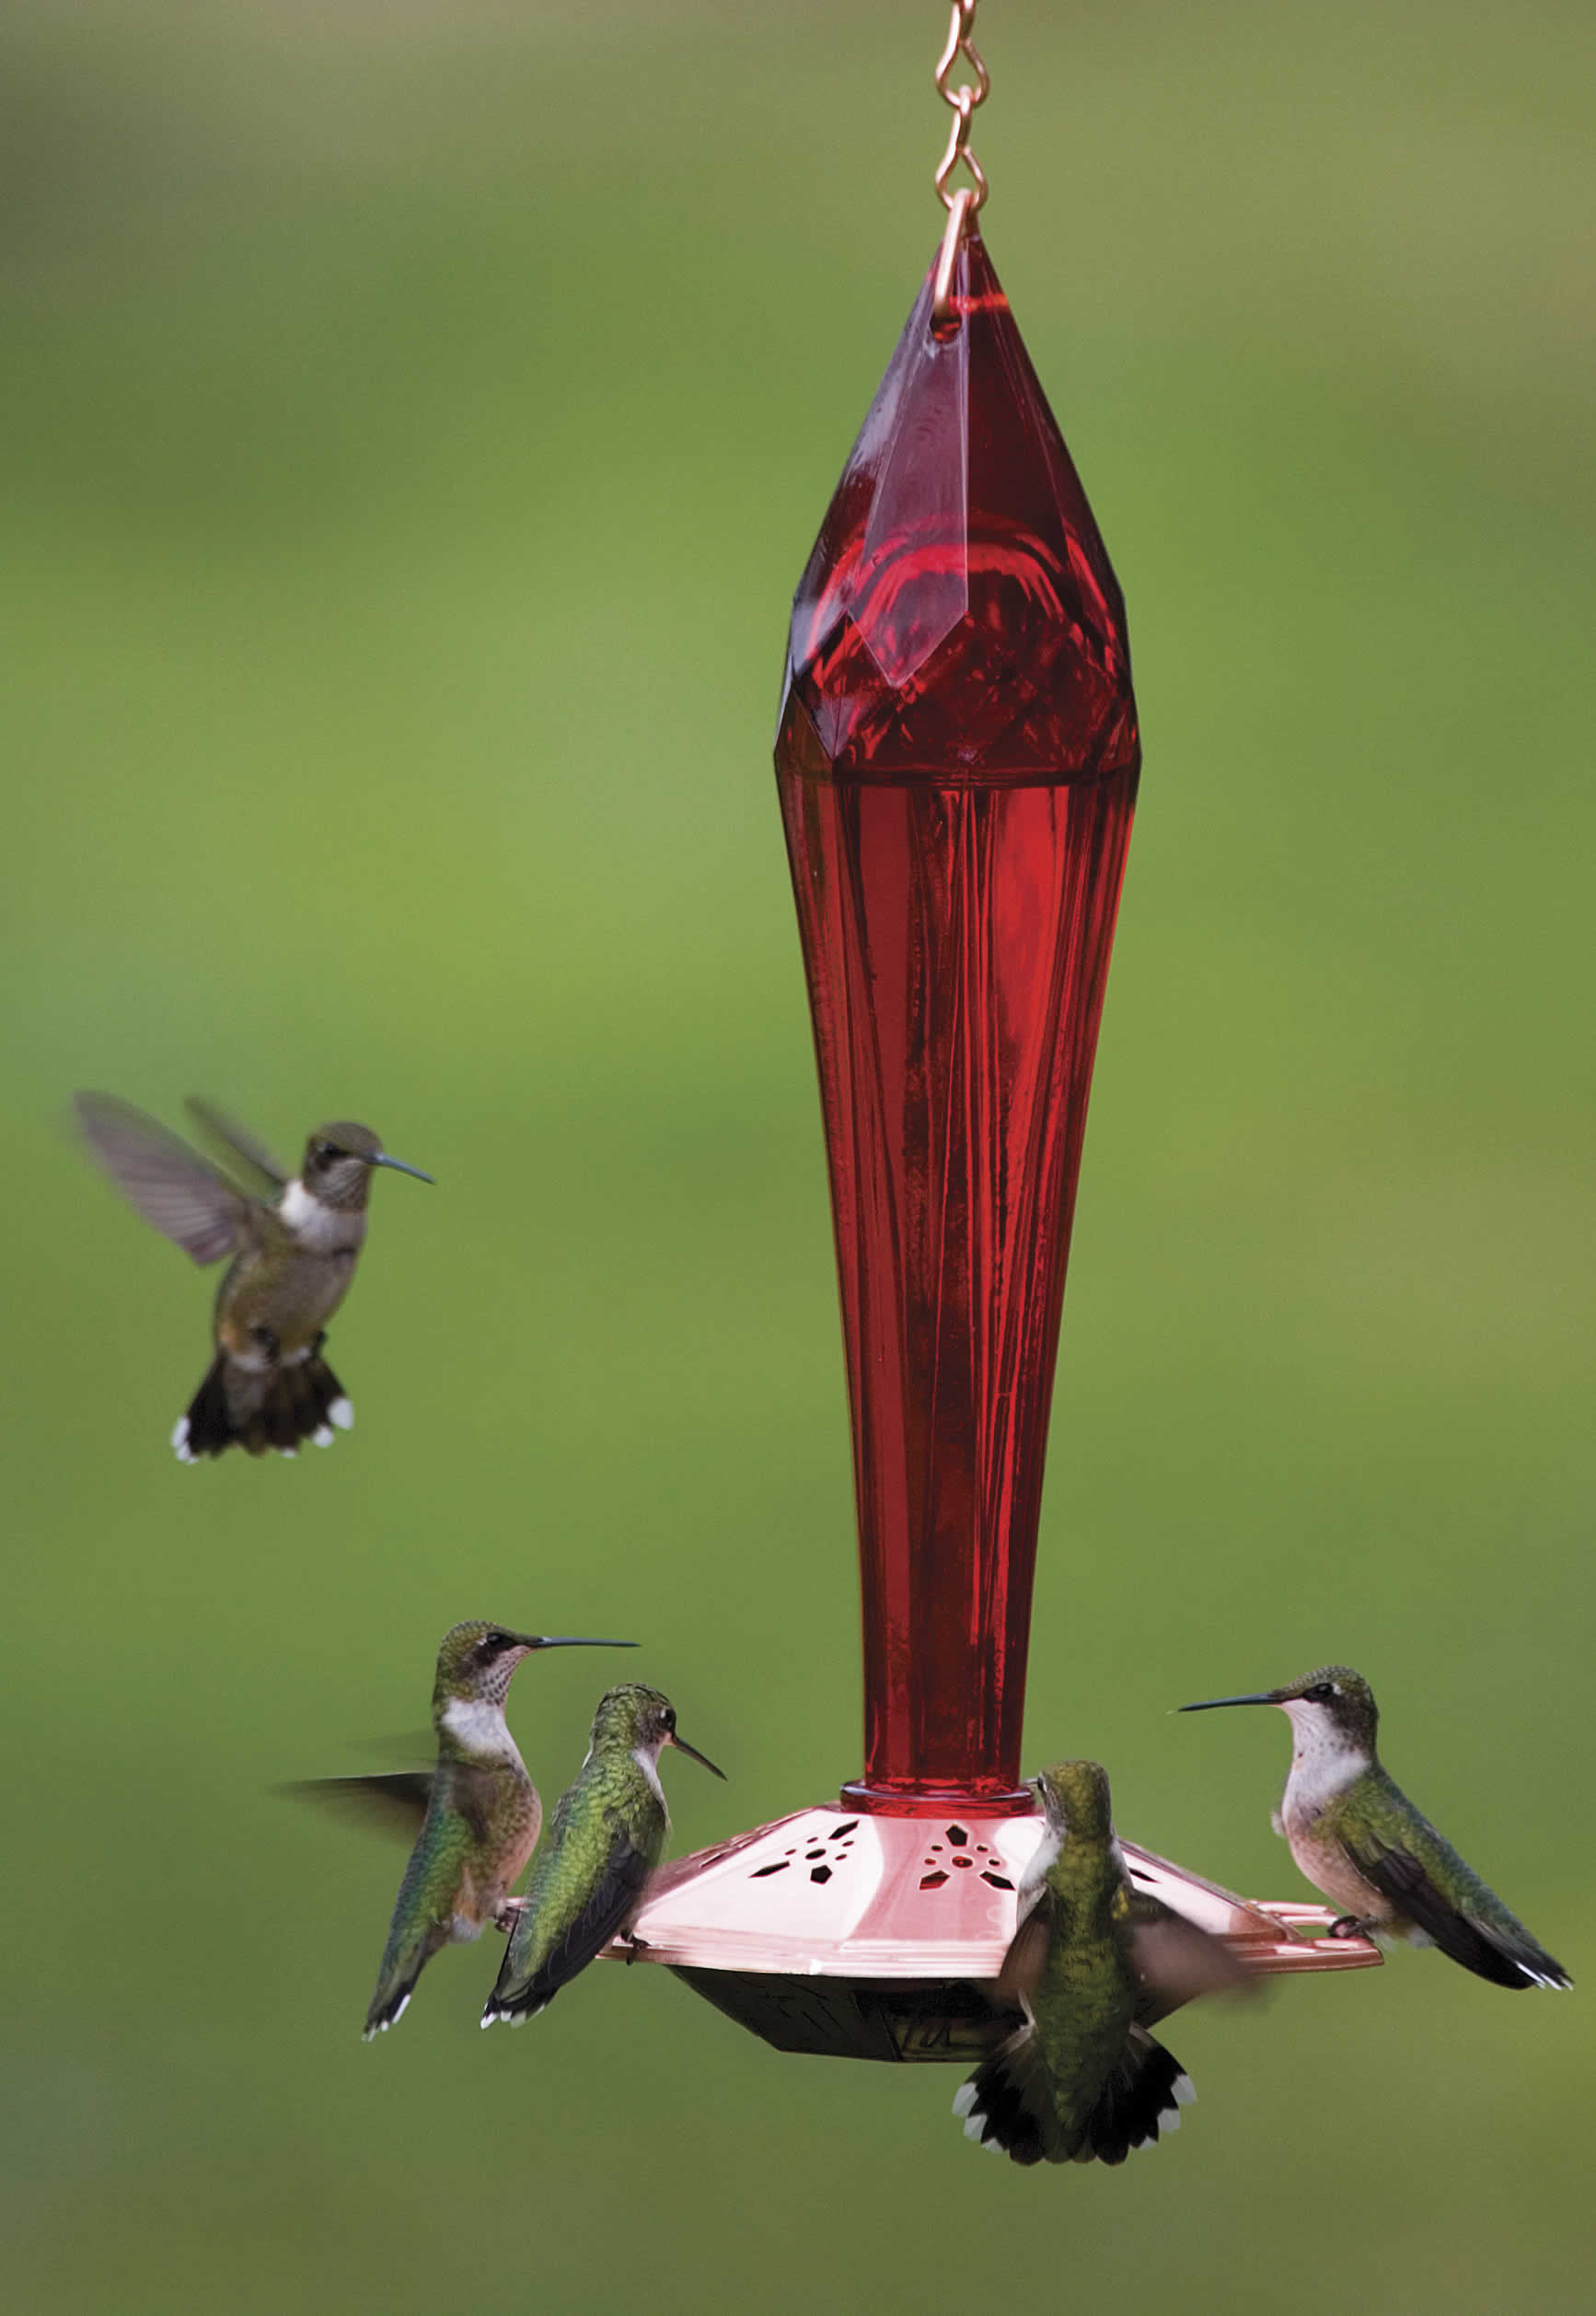 ounces pet blown yellow decorative home feeder natures birds feeders glass best with of premium reviews by unique hummingbird bird product red hummingbirds hand and rave products globe nectar